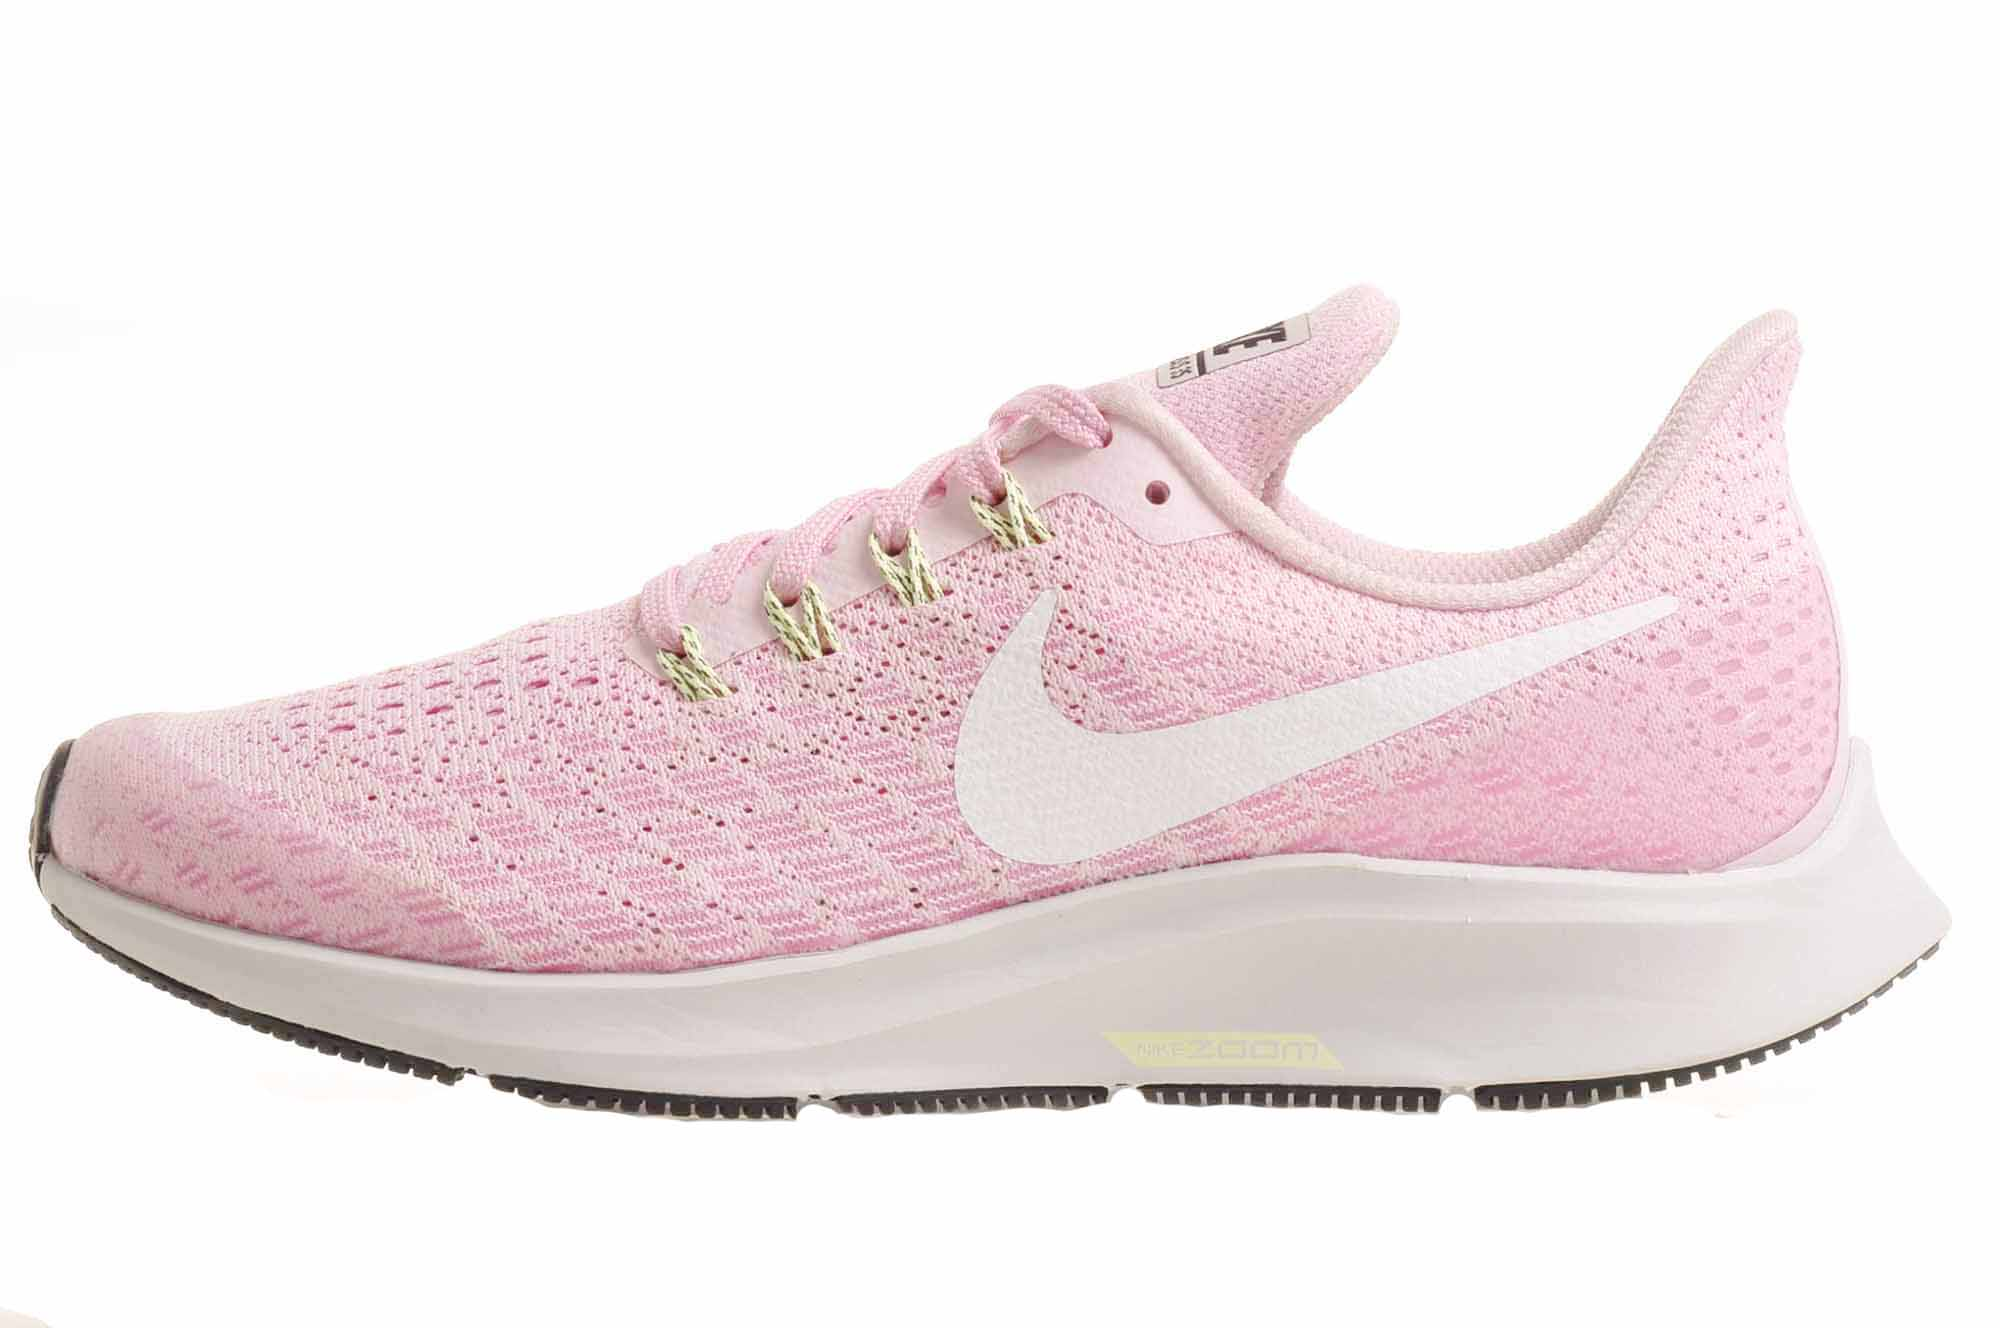 Details about Nike Air Zoom Pegasus 35 GS Youth Running Shoes Pink AH3481 600